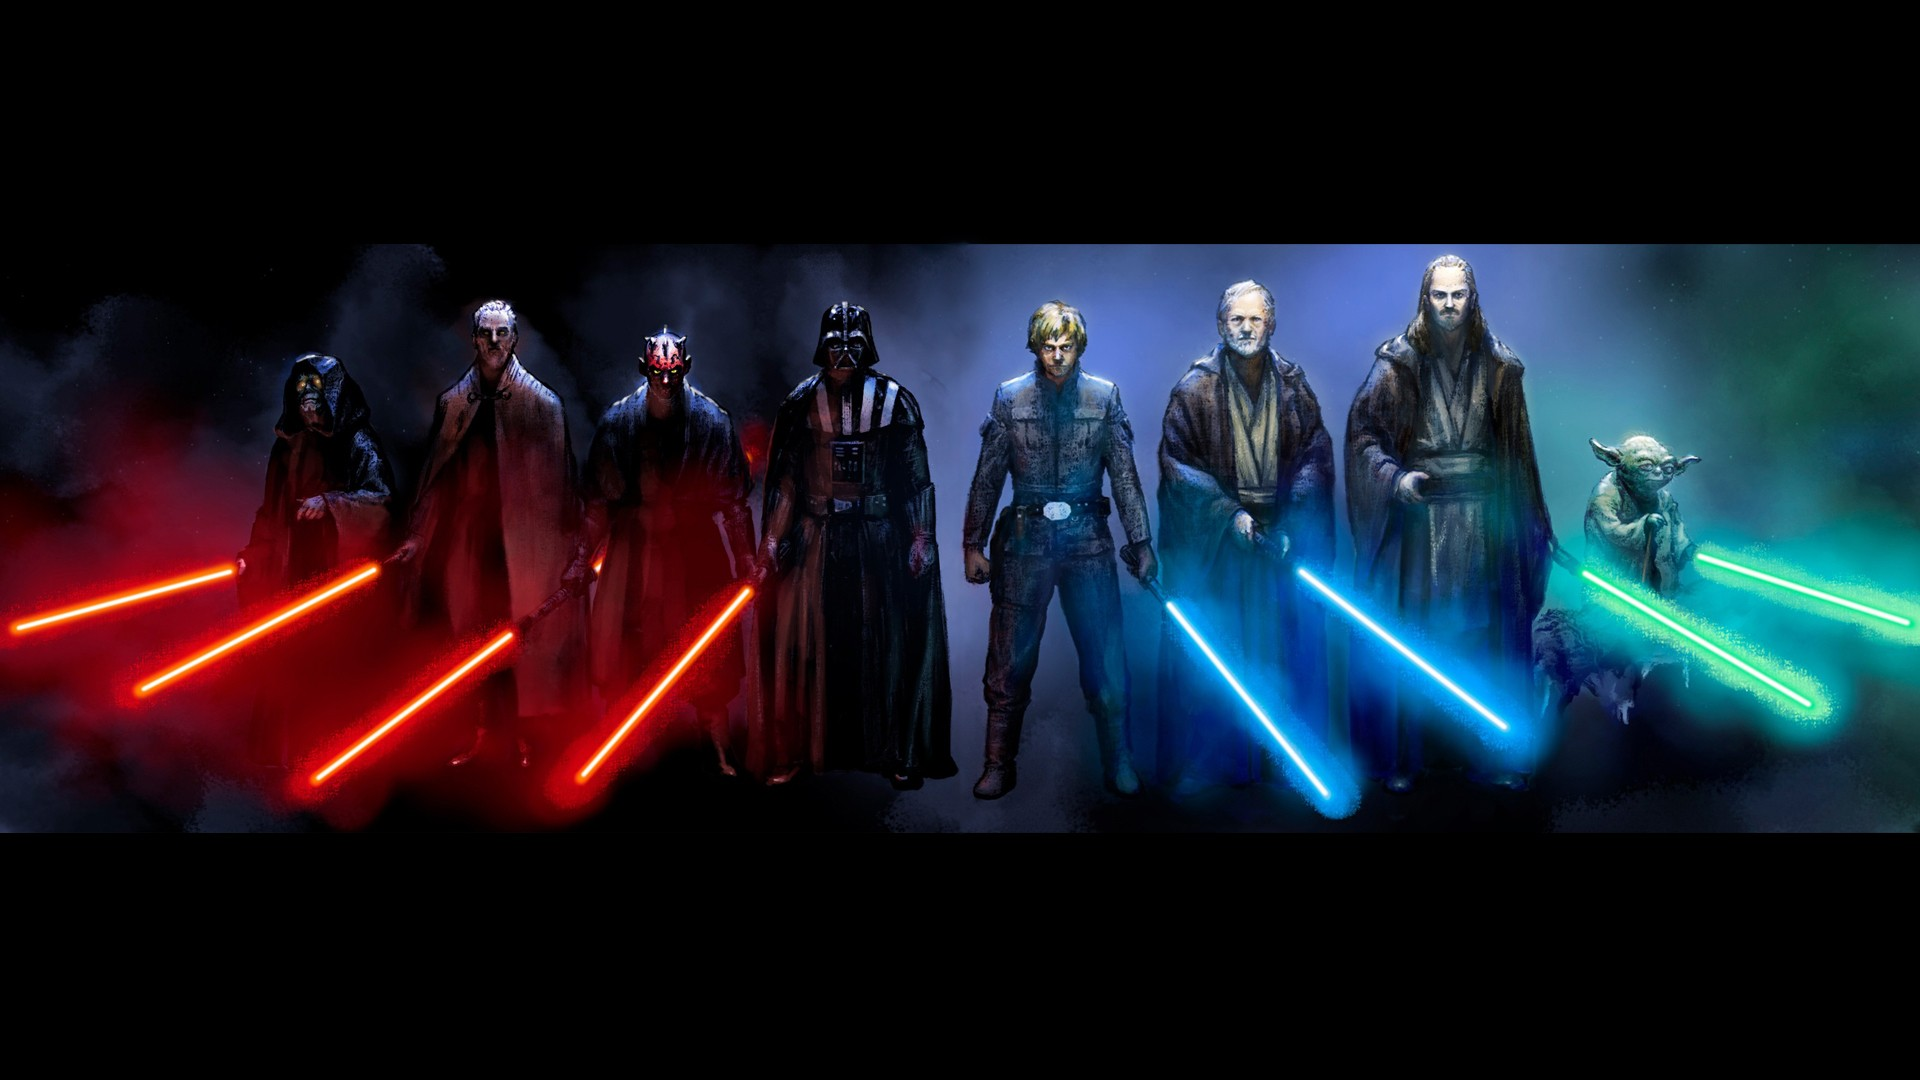 wallpaperstocknetstar wars sith and jedi wallpapers 36095 1920x1080 1920x1080